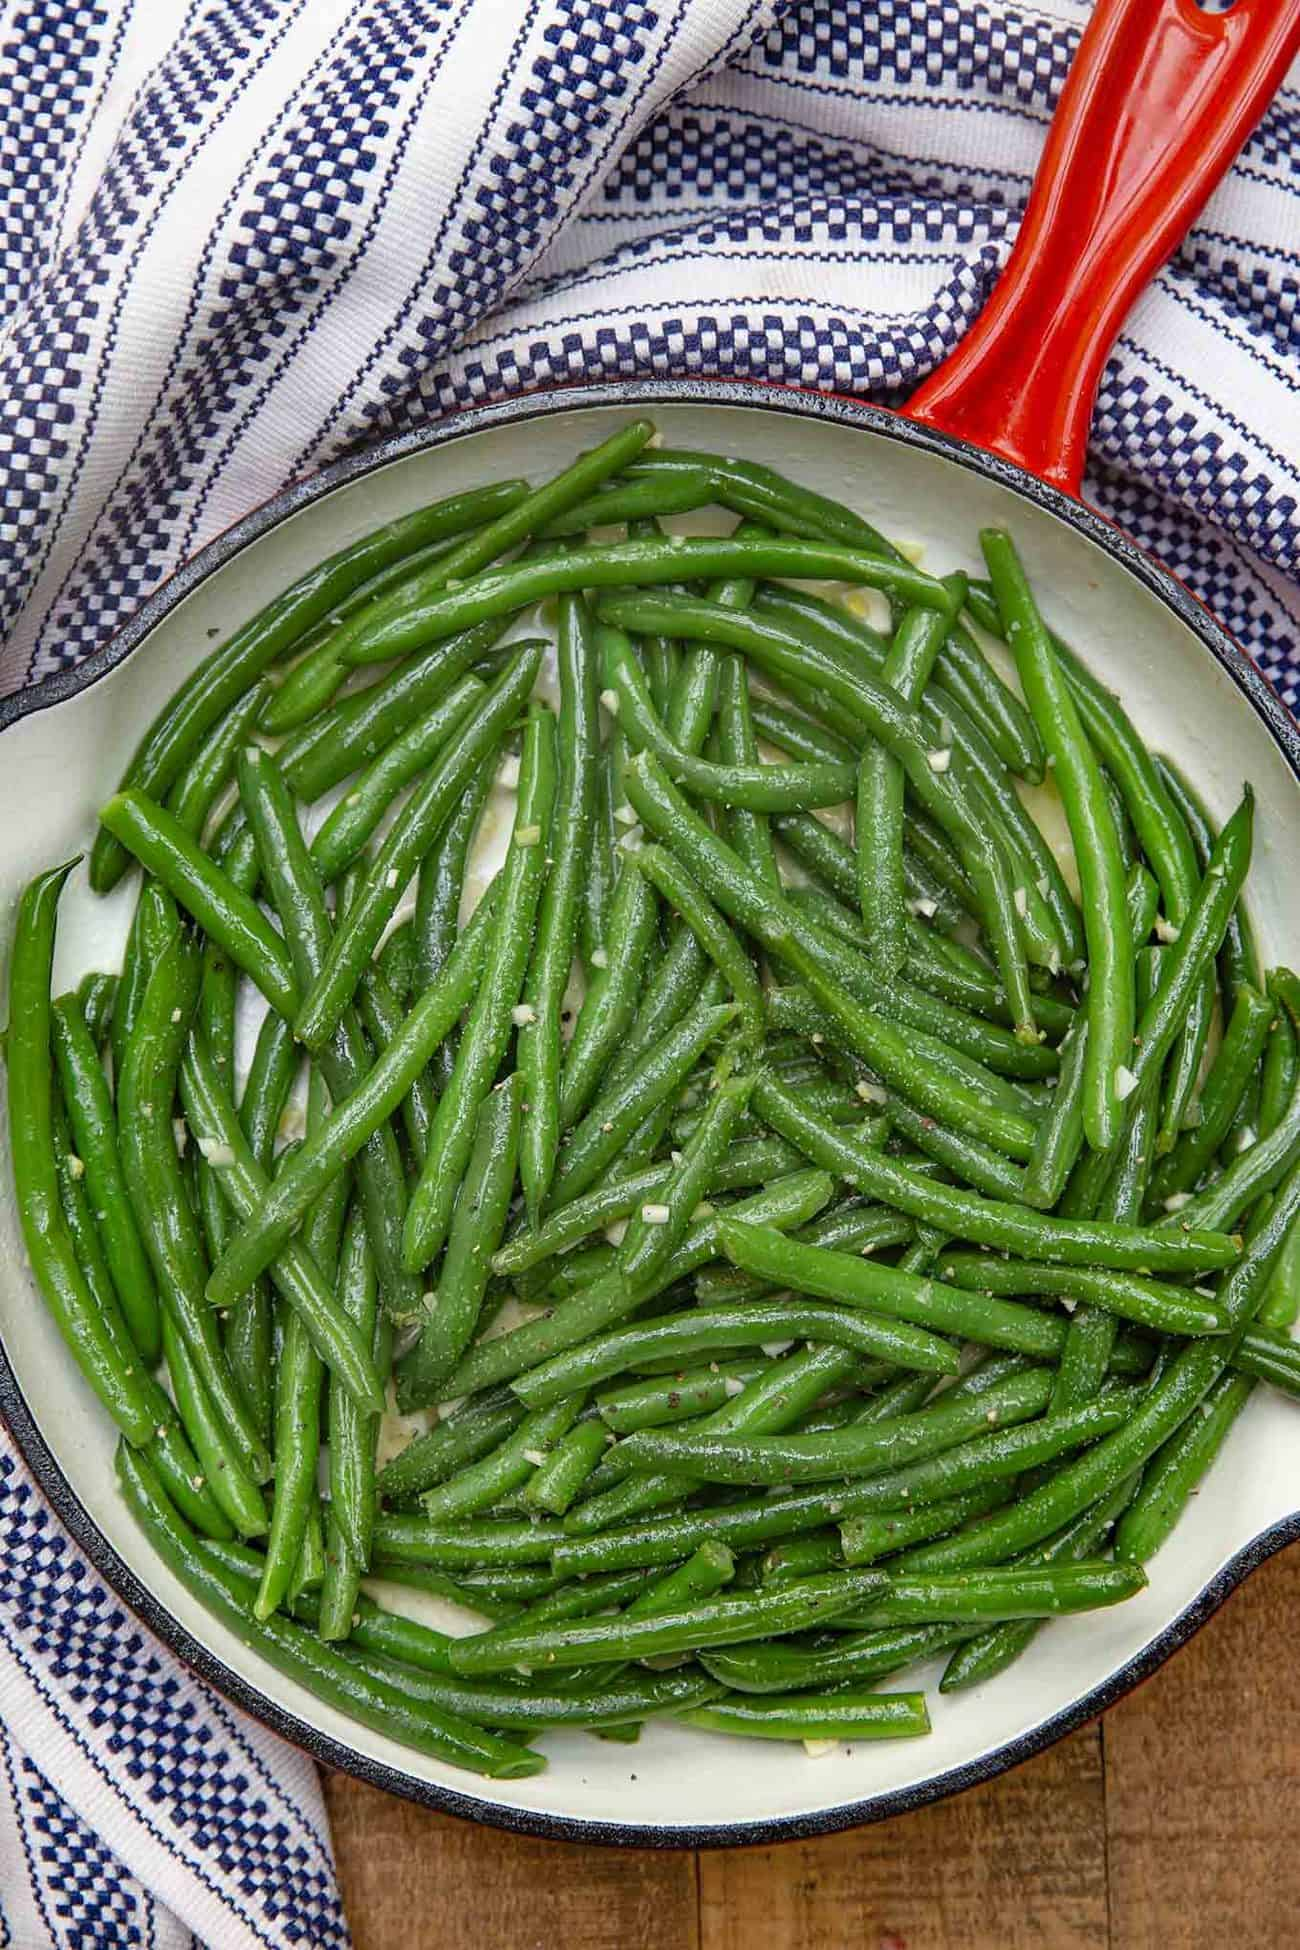 Sauteéd Green Beans in red pan